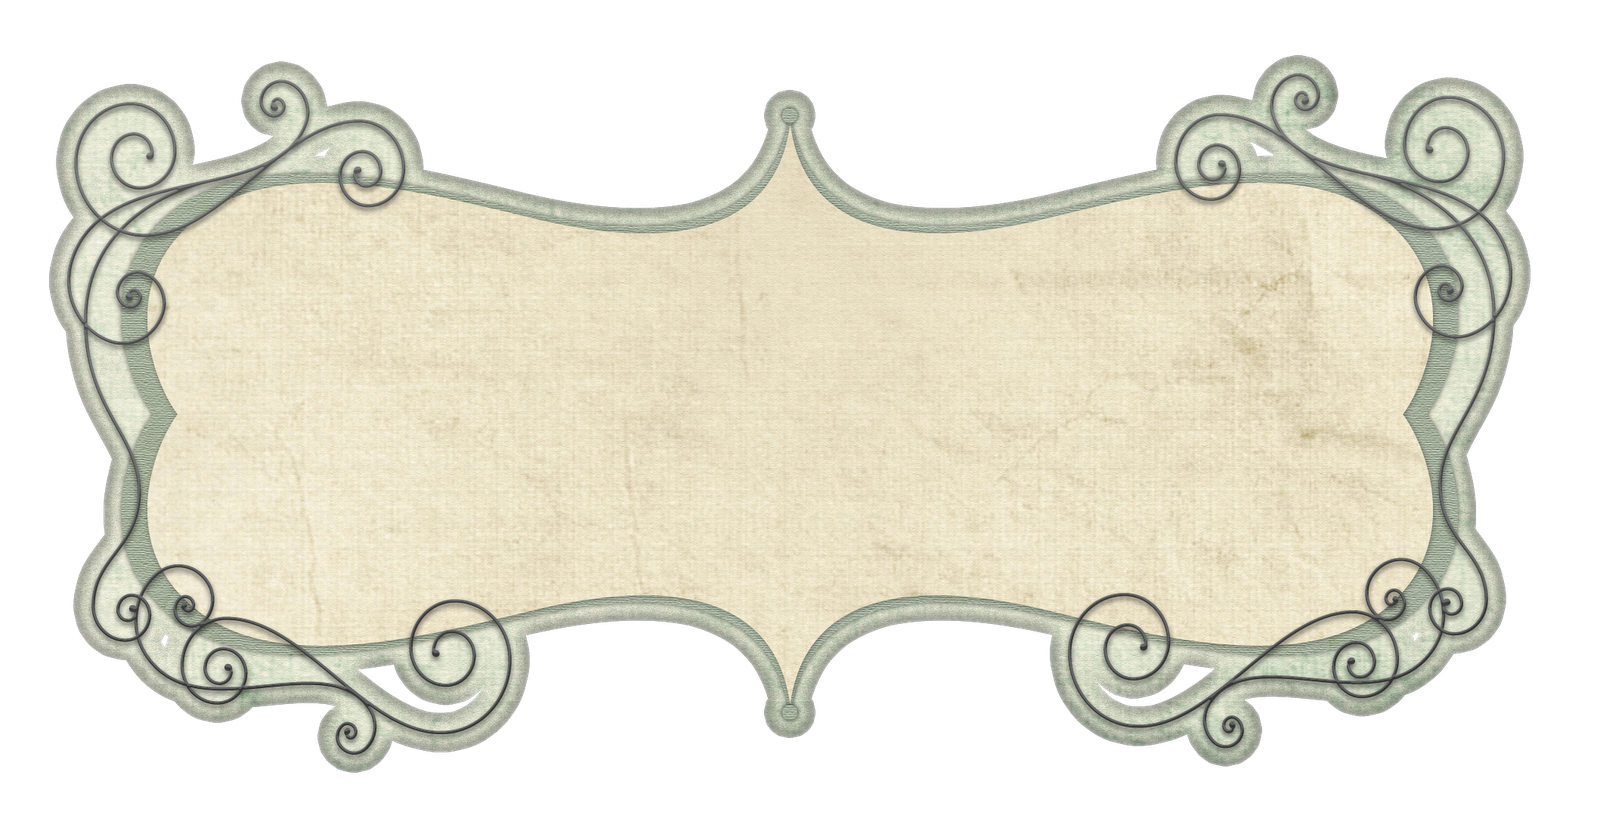 Pretty Borders And Frames Here S The Free Cu4cu Doodle Frame This One You Can Just Click On The Border Templates Doodle Frame Vintage Tags